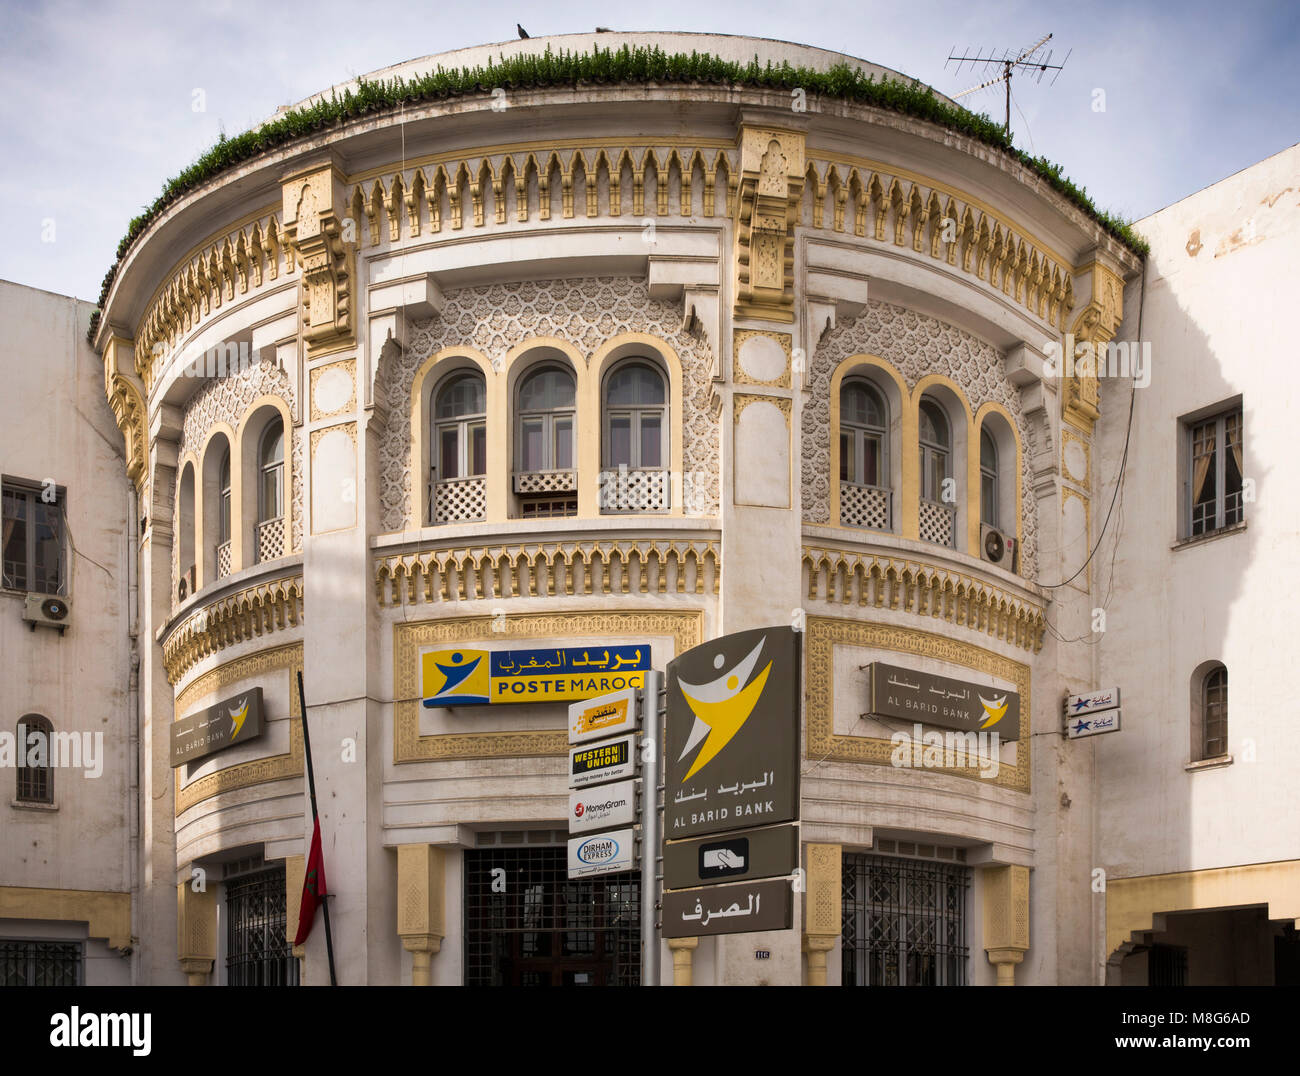 Morocco casablanca bv mohammed v central market post office and